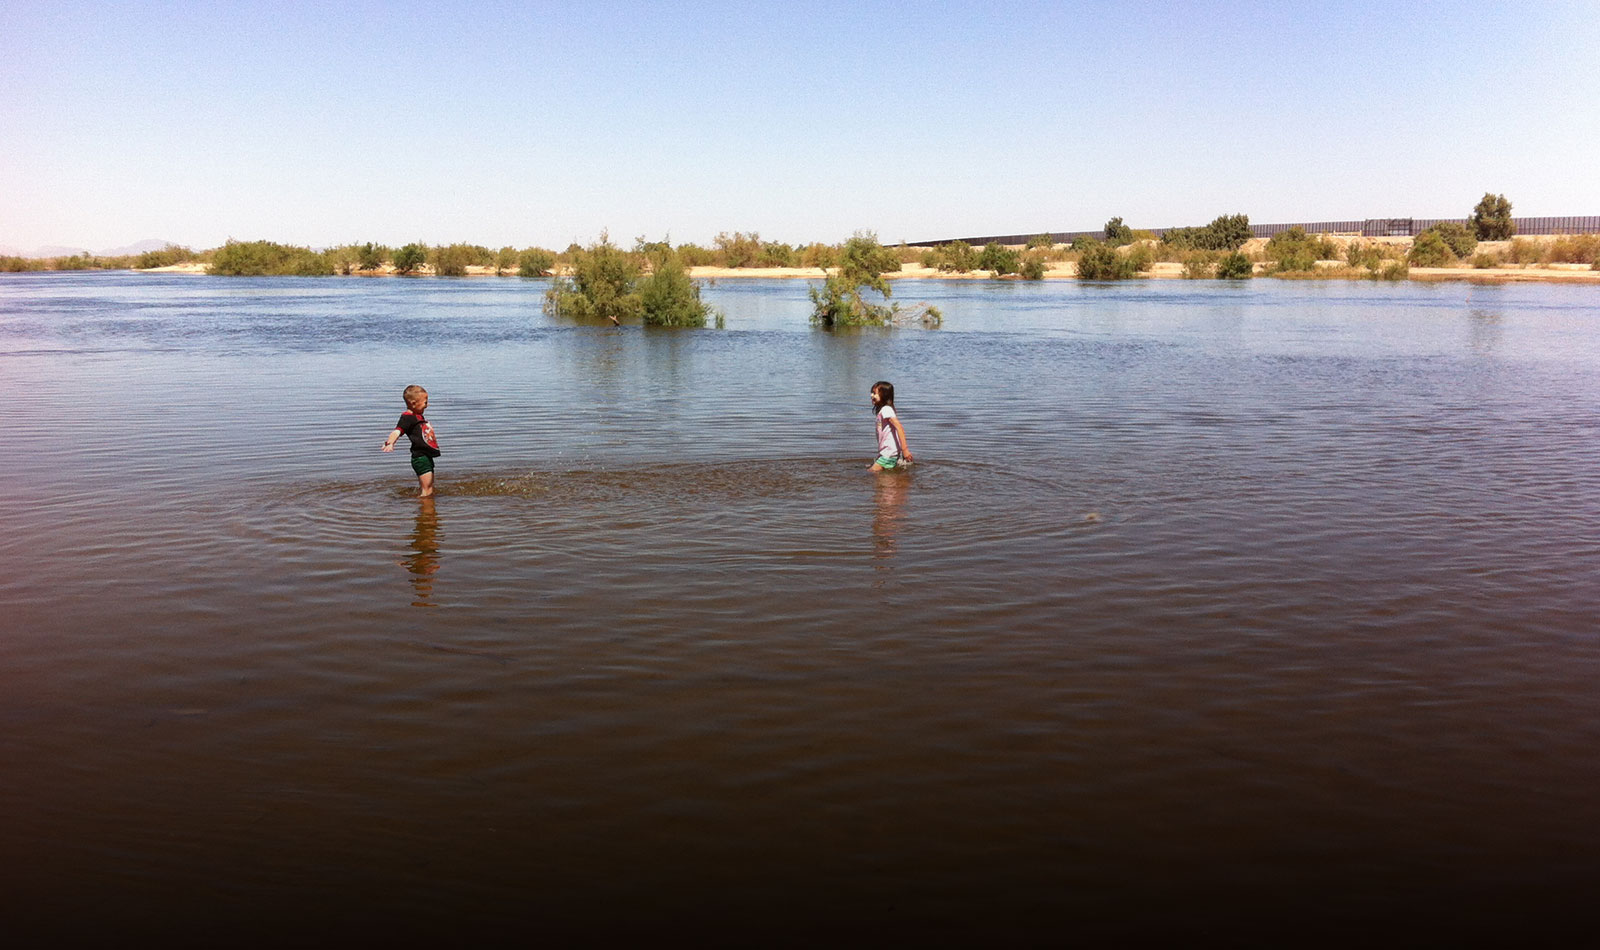 Happy Colorado River Day: Students in the Delta Campaign!